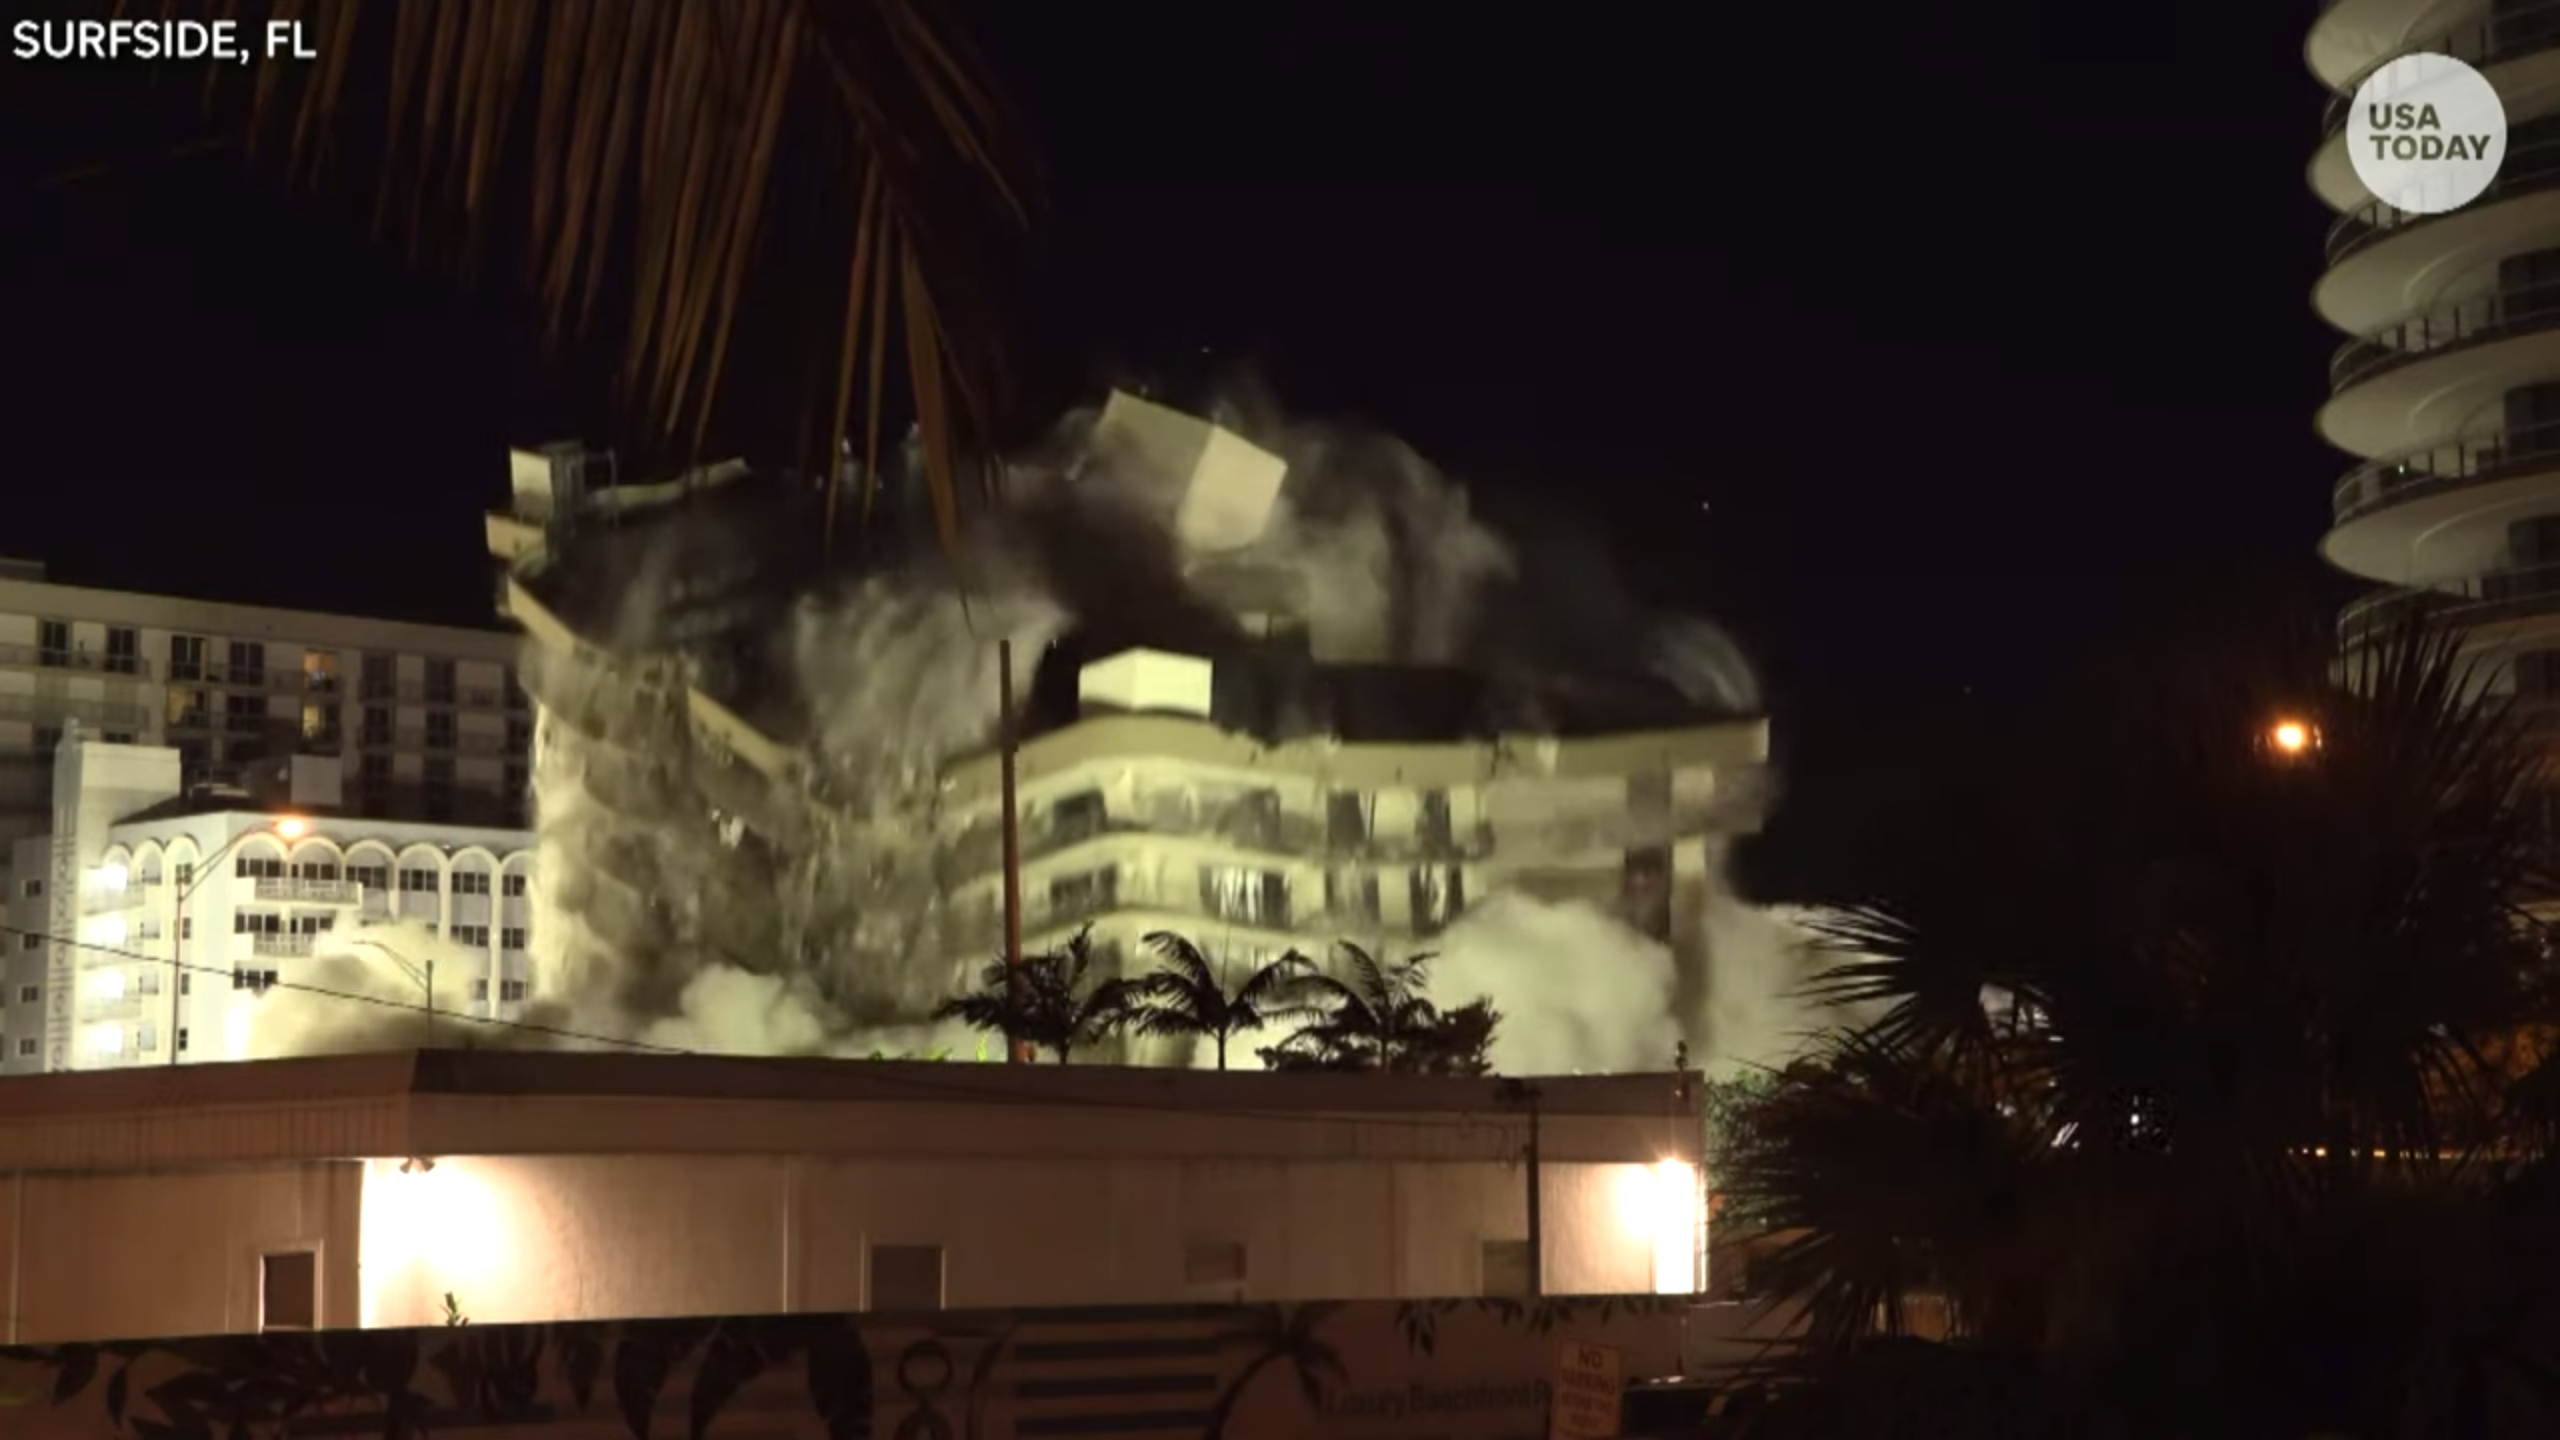 Controlled explosions as demolition crews blast what s left of collapsed Florida condo